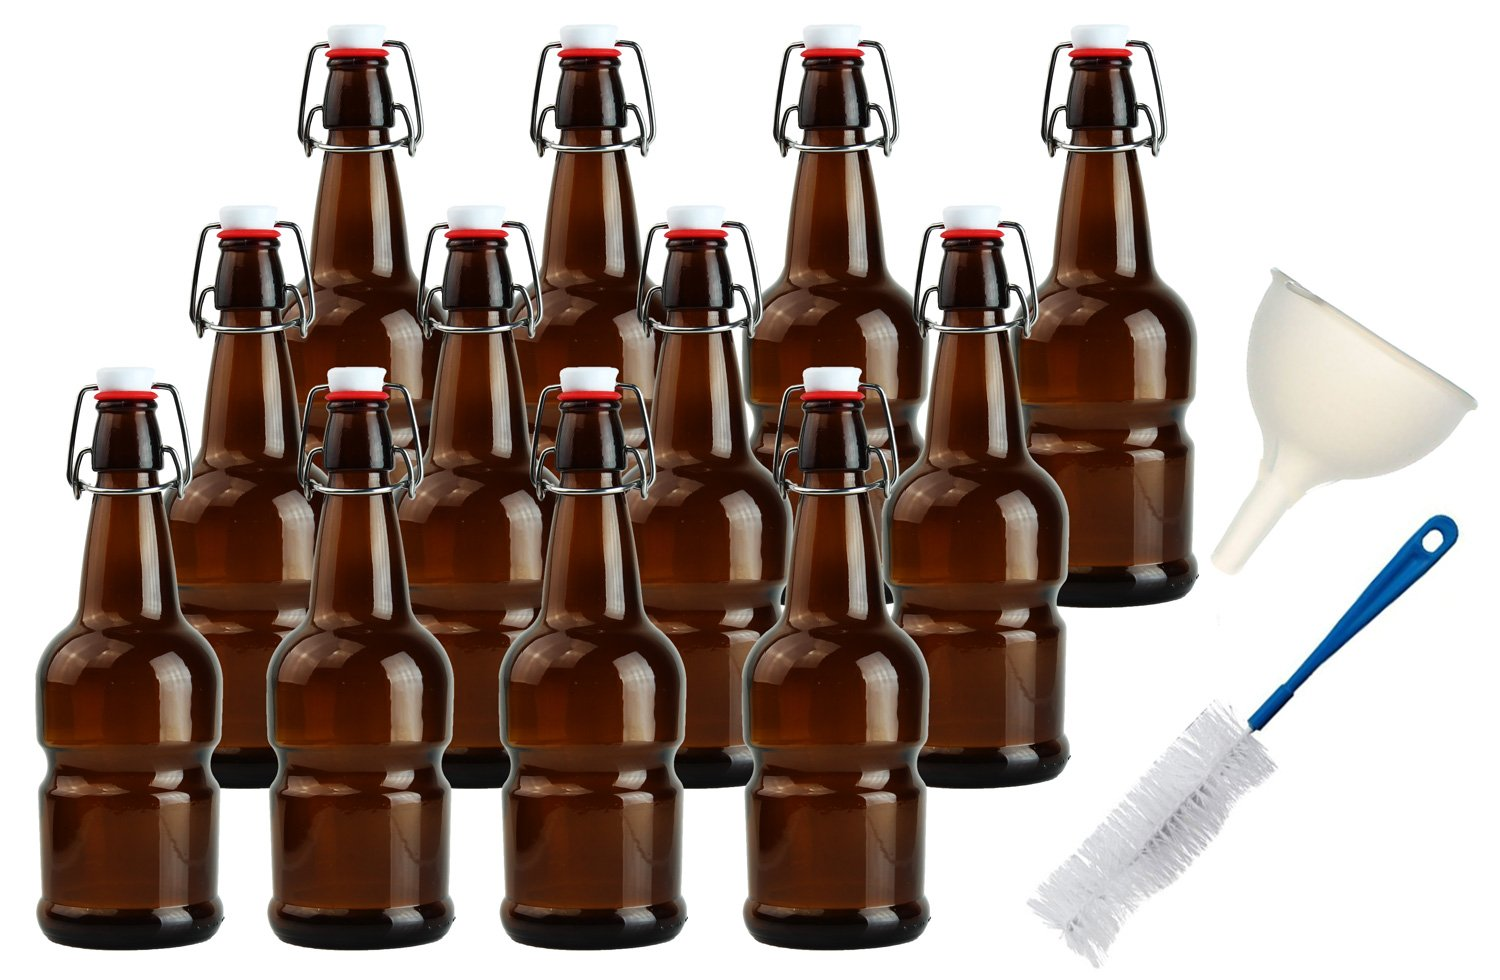 Teikis 16oz Kombucha/Beer Bottles (12 Pack|Amber) with Funnel + Brush (Better Grip Non Slip)